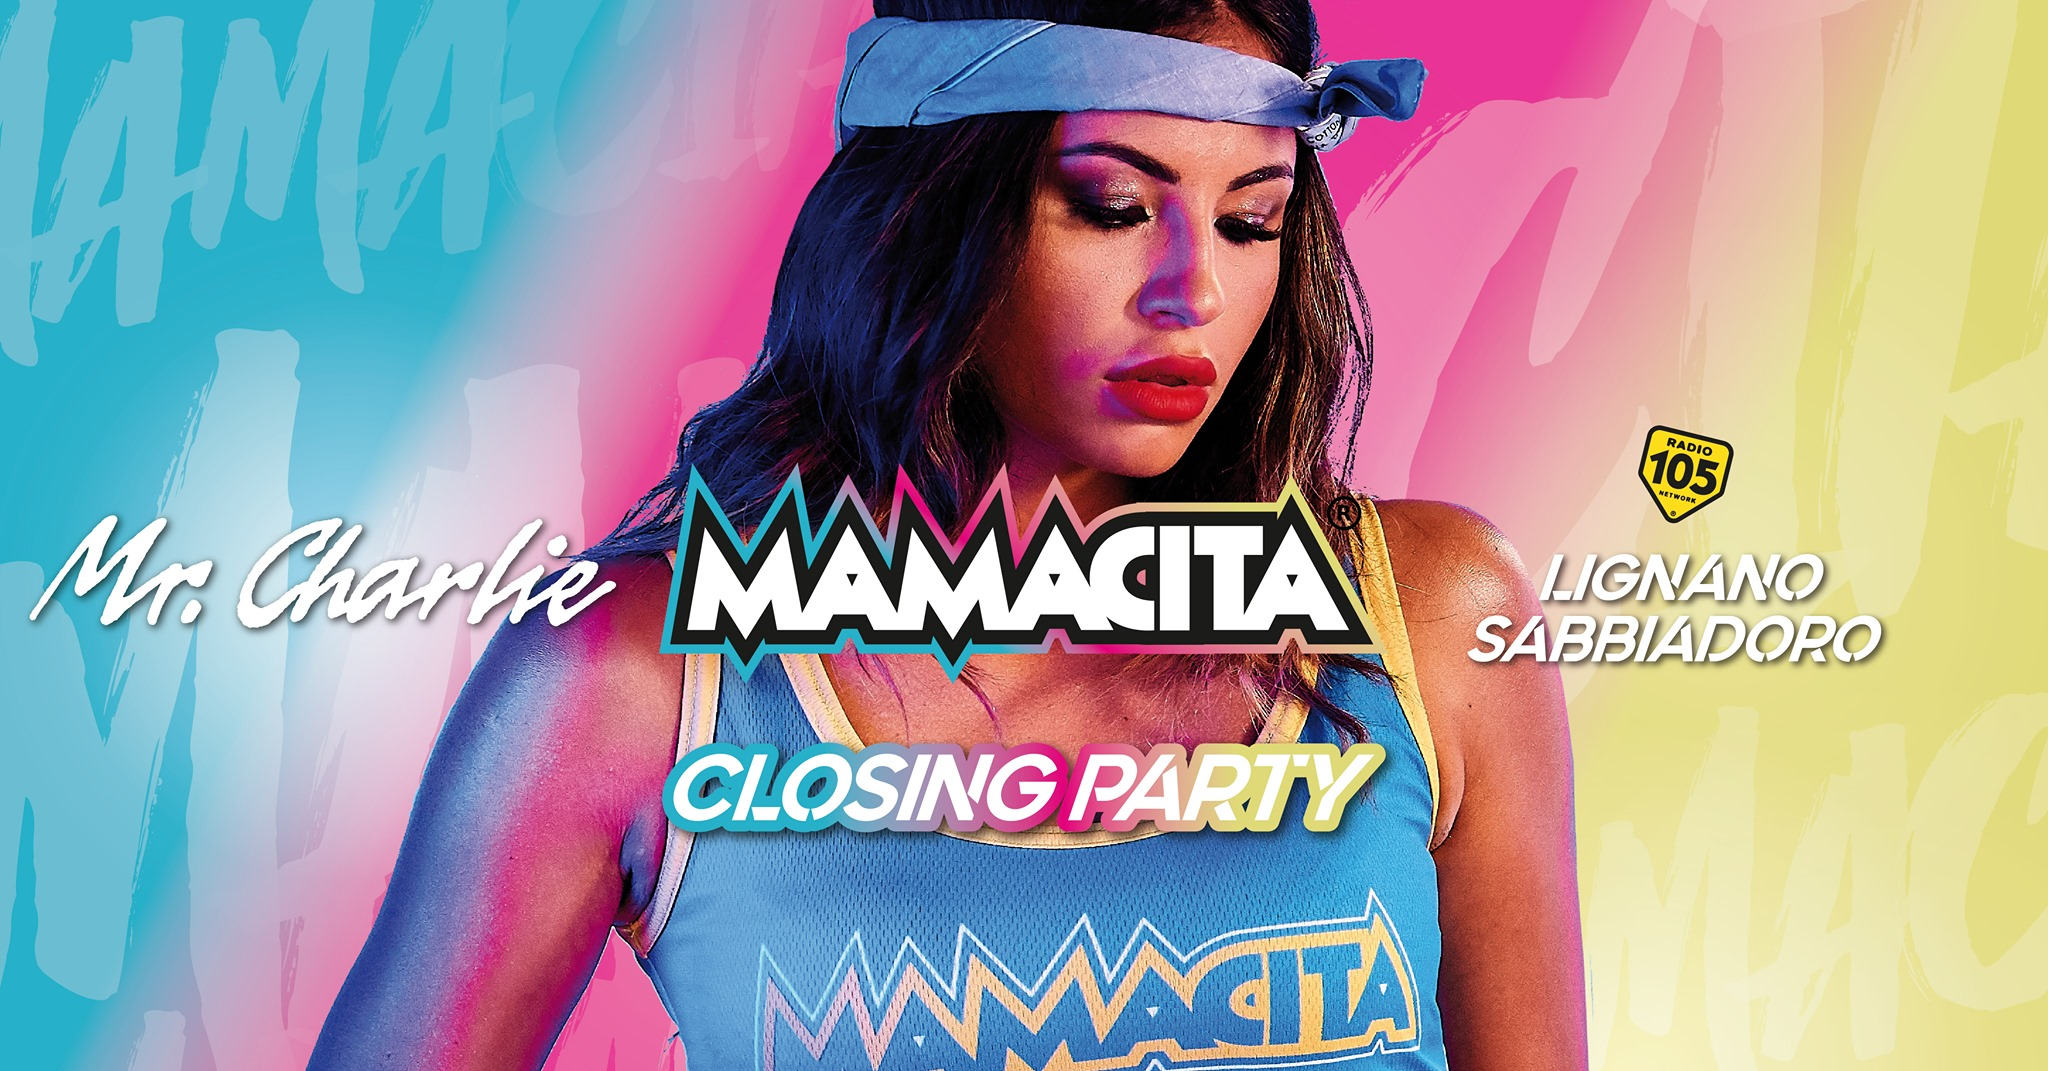 Mamacita Closing Party - Mr. Charlie - Lignano Sabbiadoro